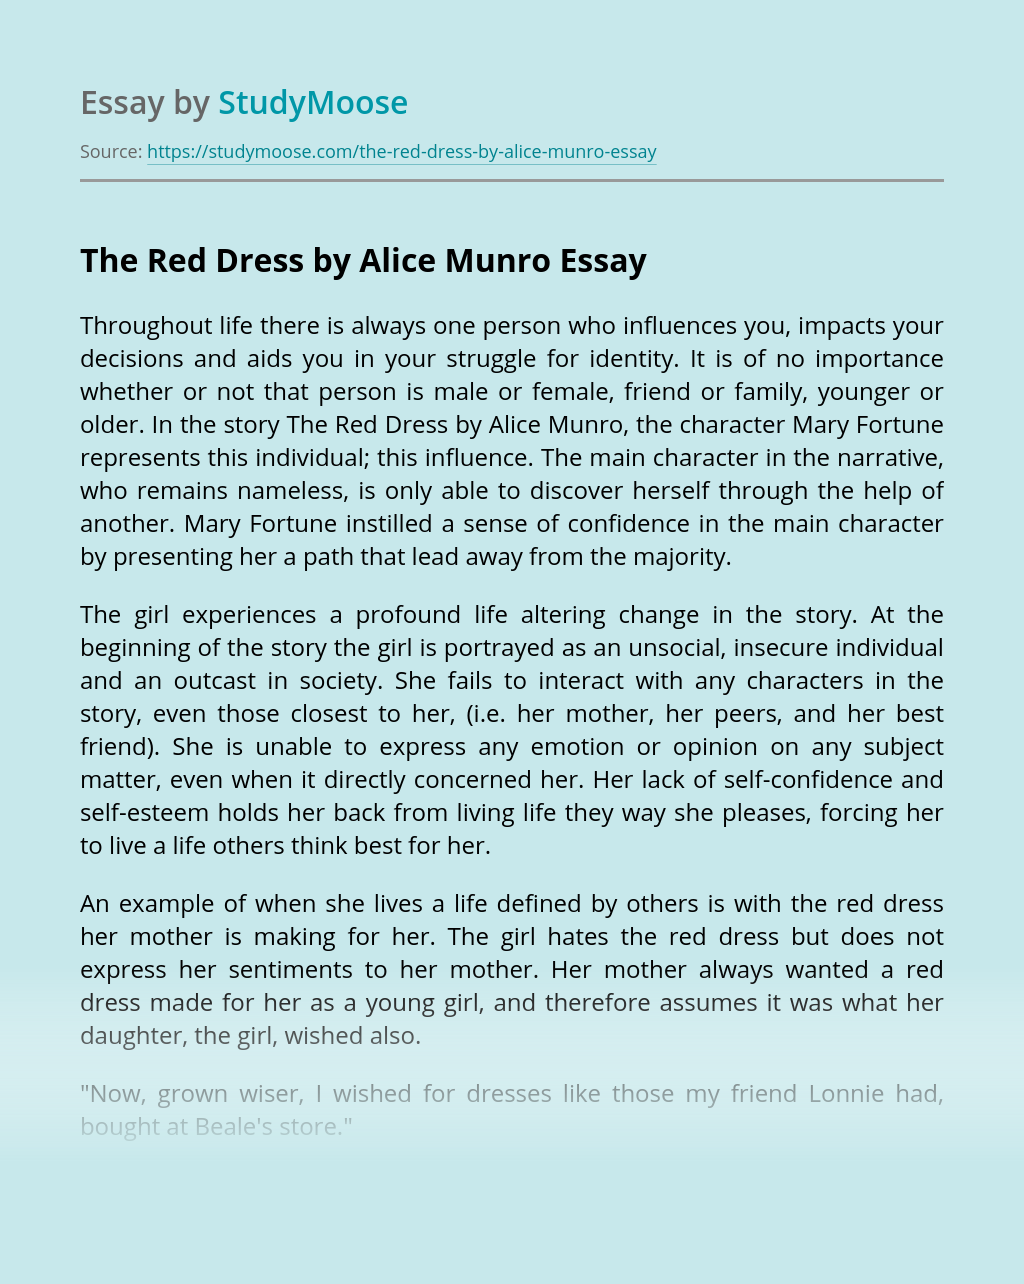 The Red Dress by Alice Munro